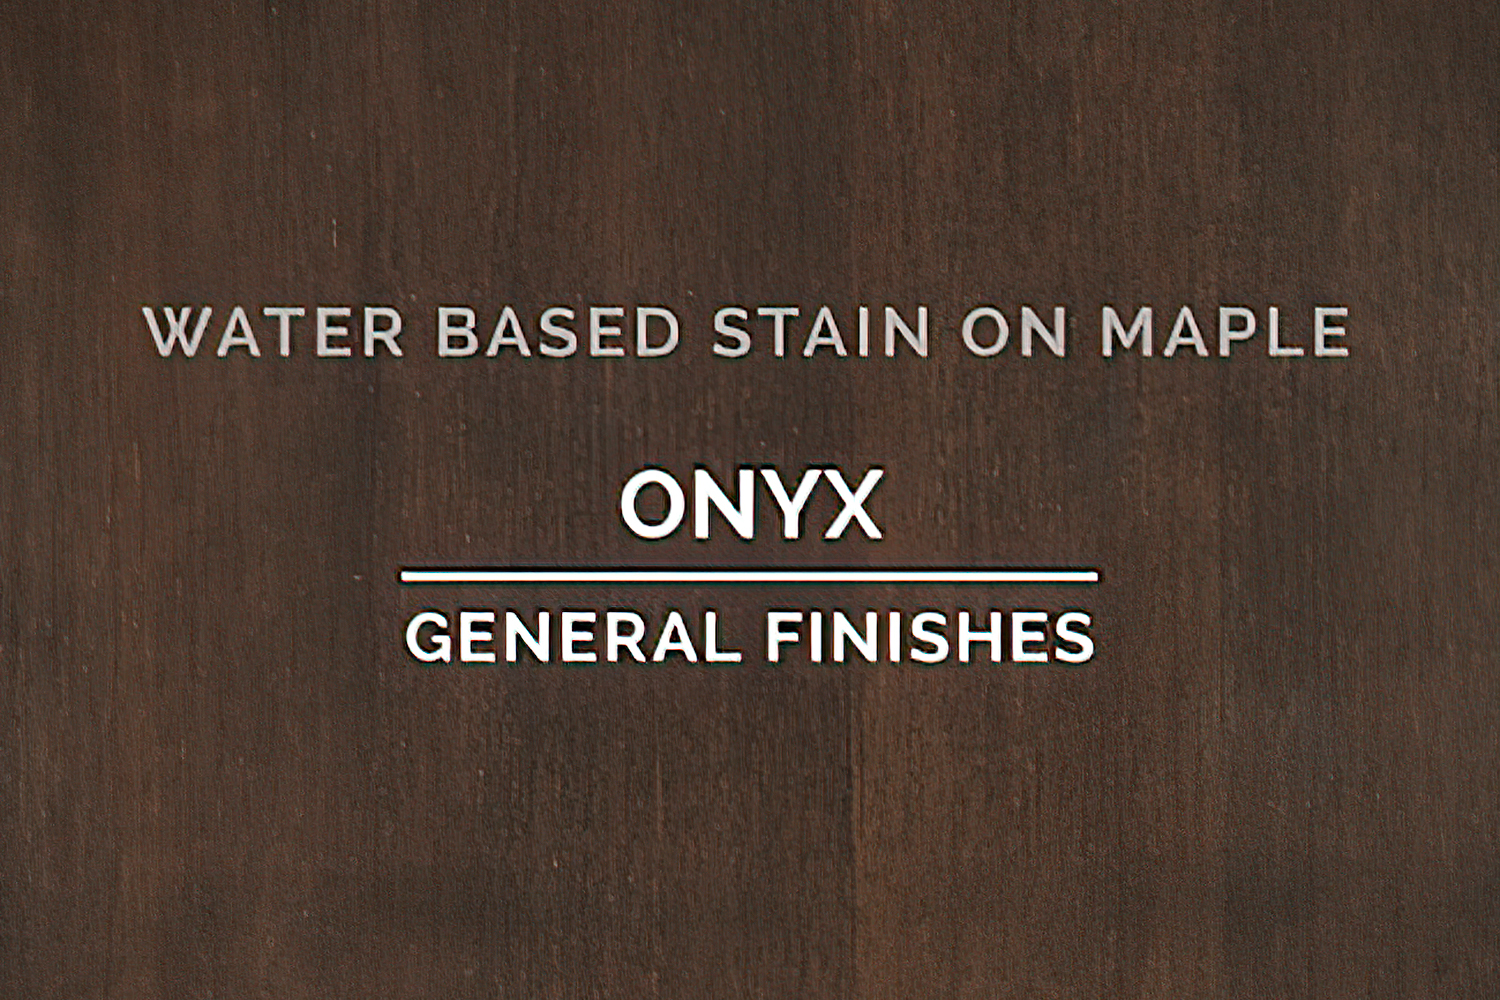 General Finishes Onyx Stain Water Based